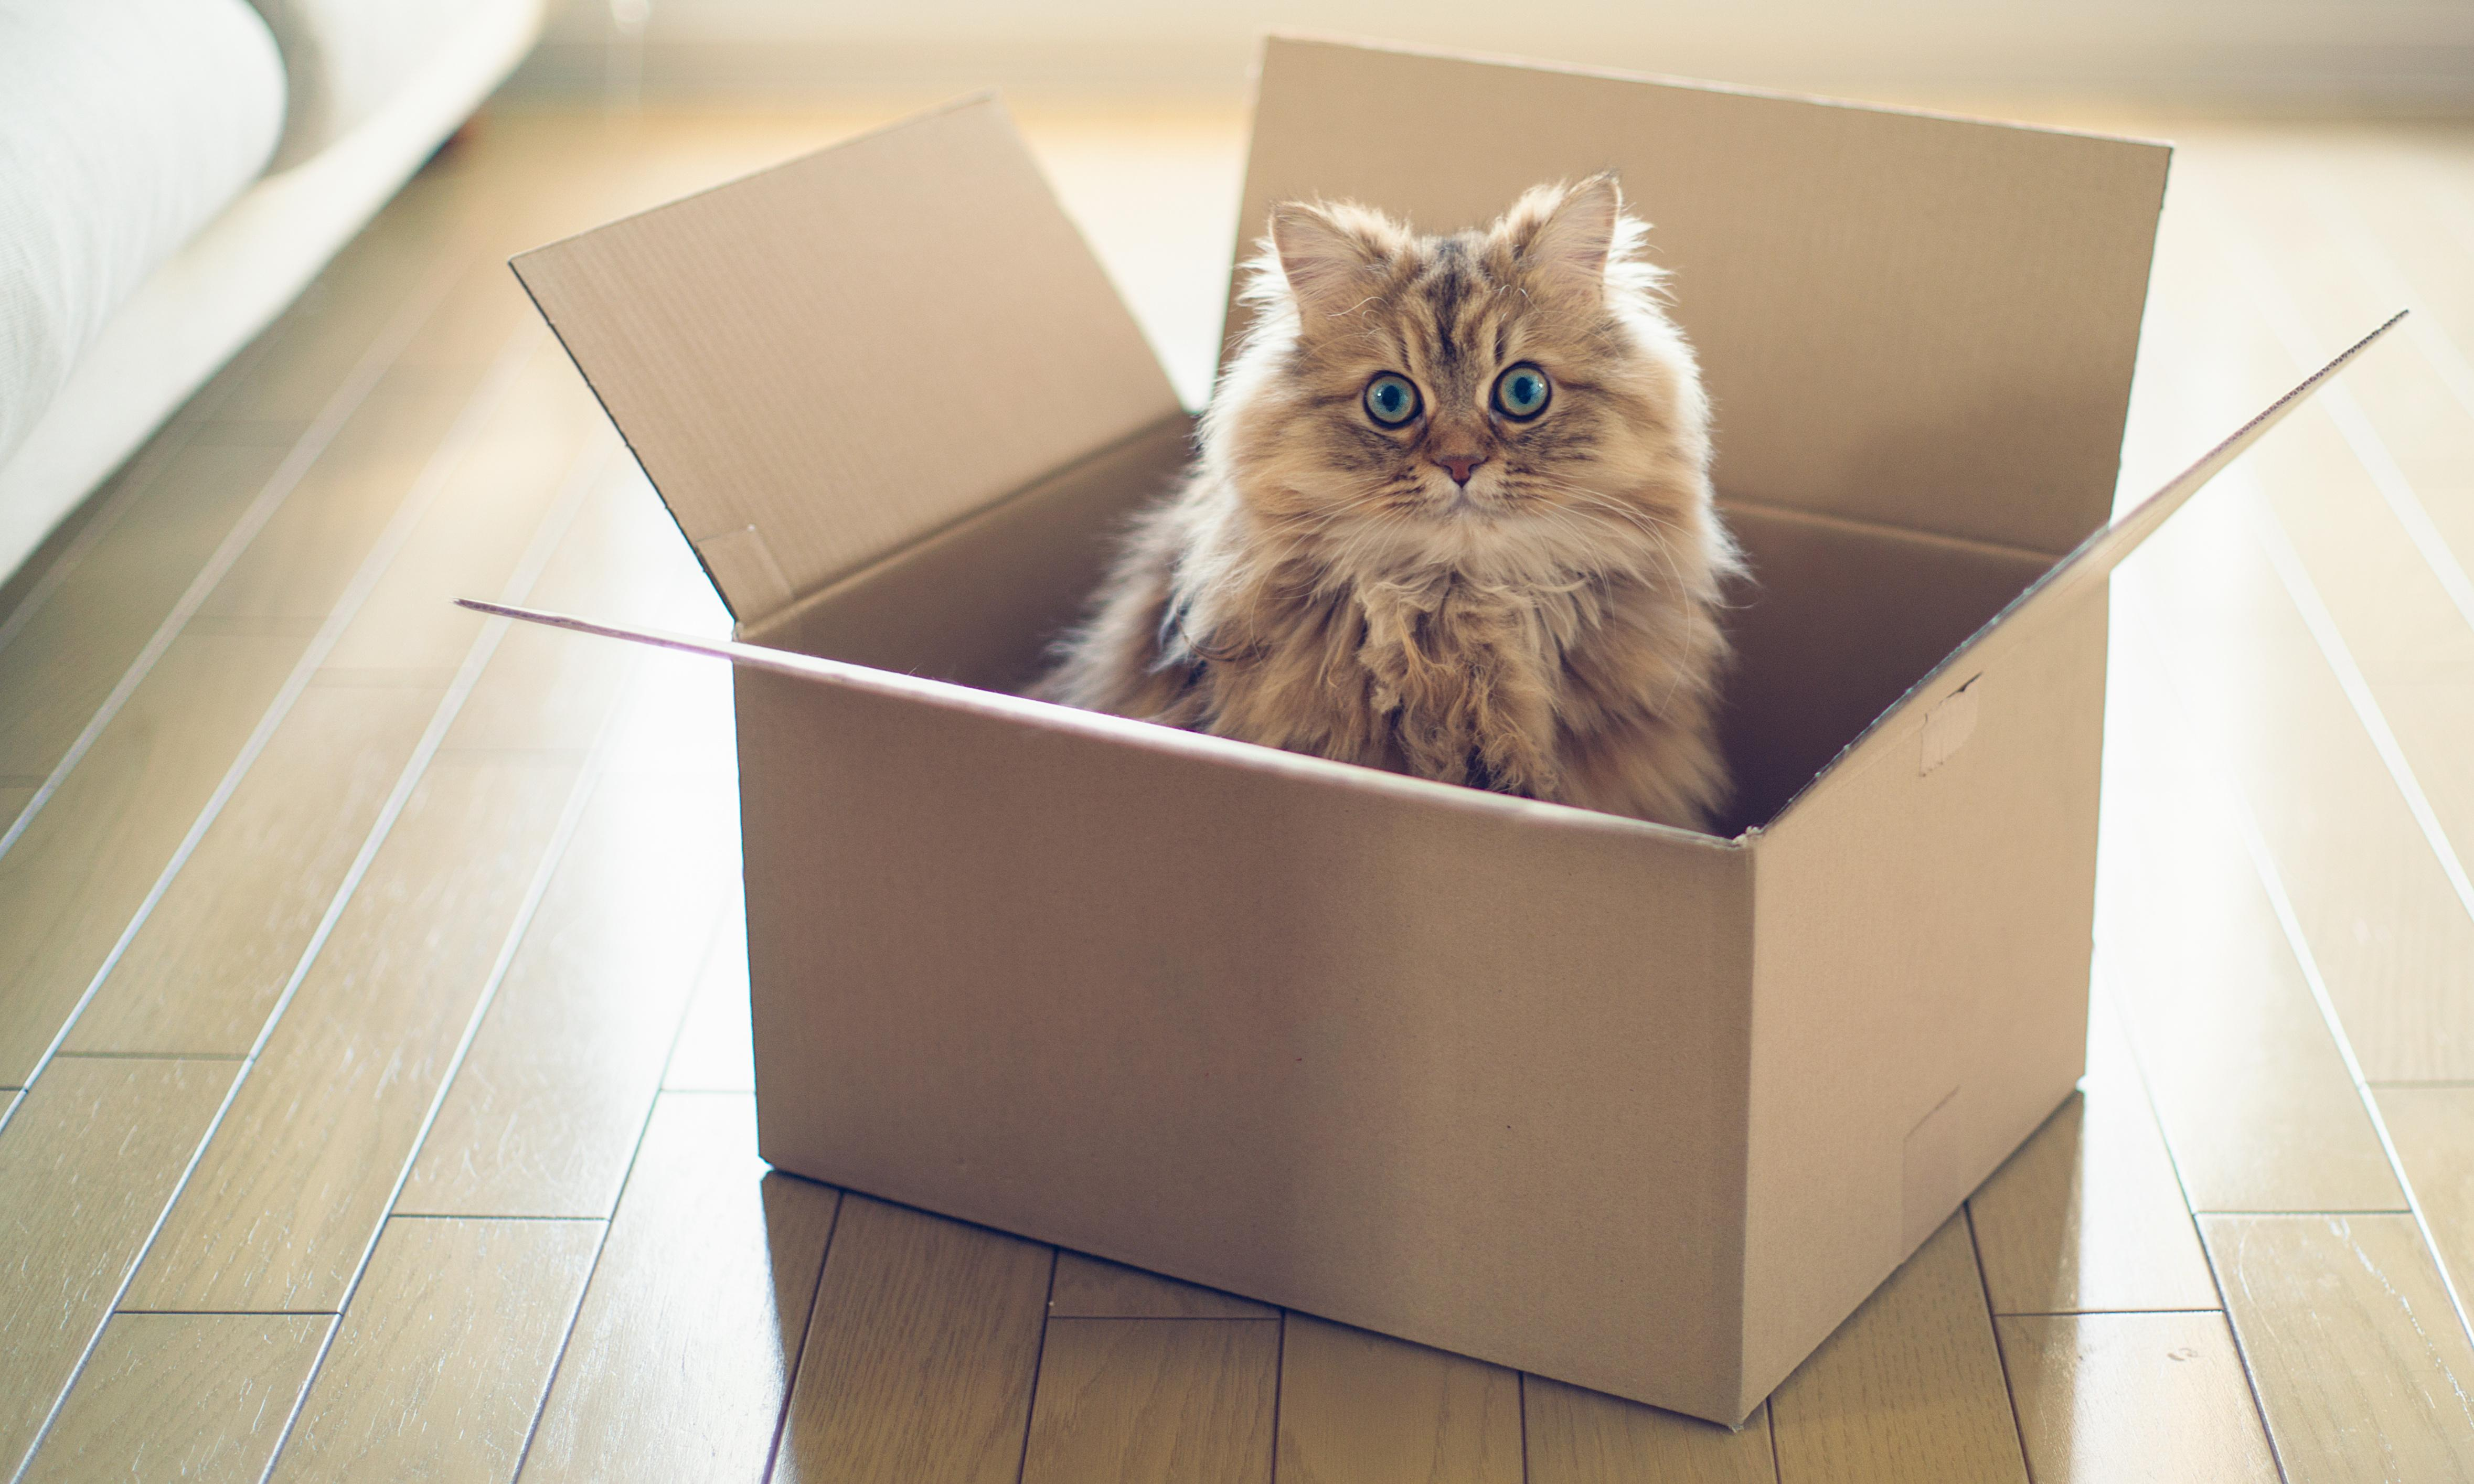 Schrödinger's cat could be saved, say scientists